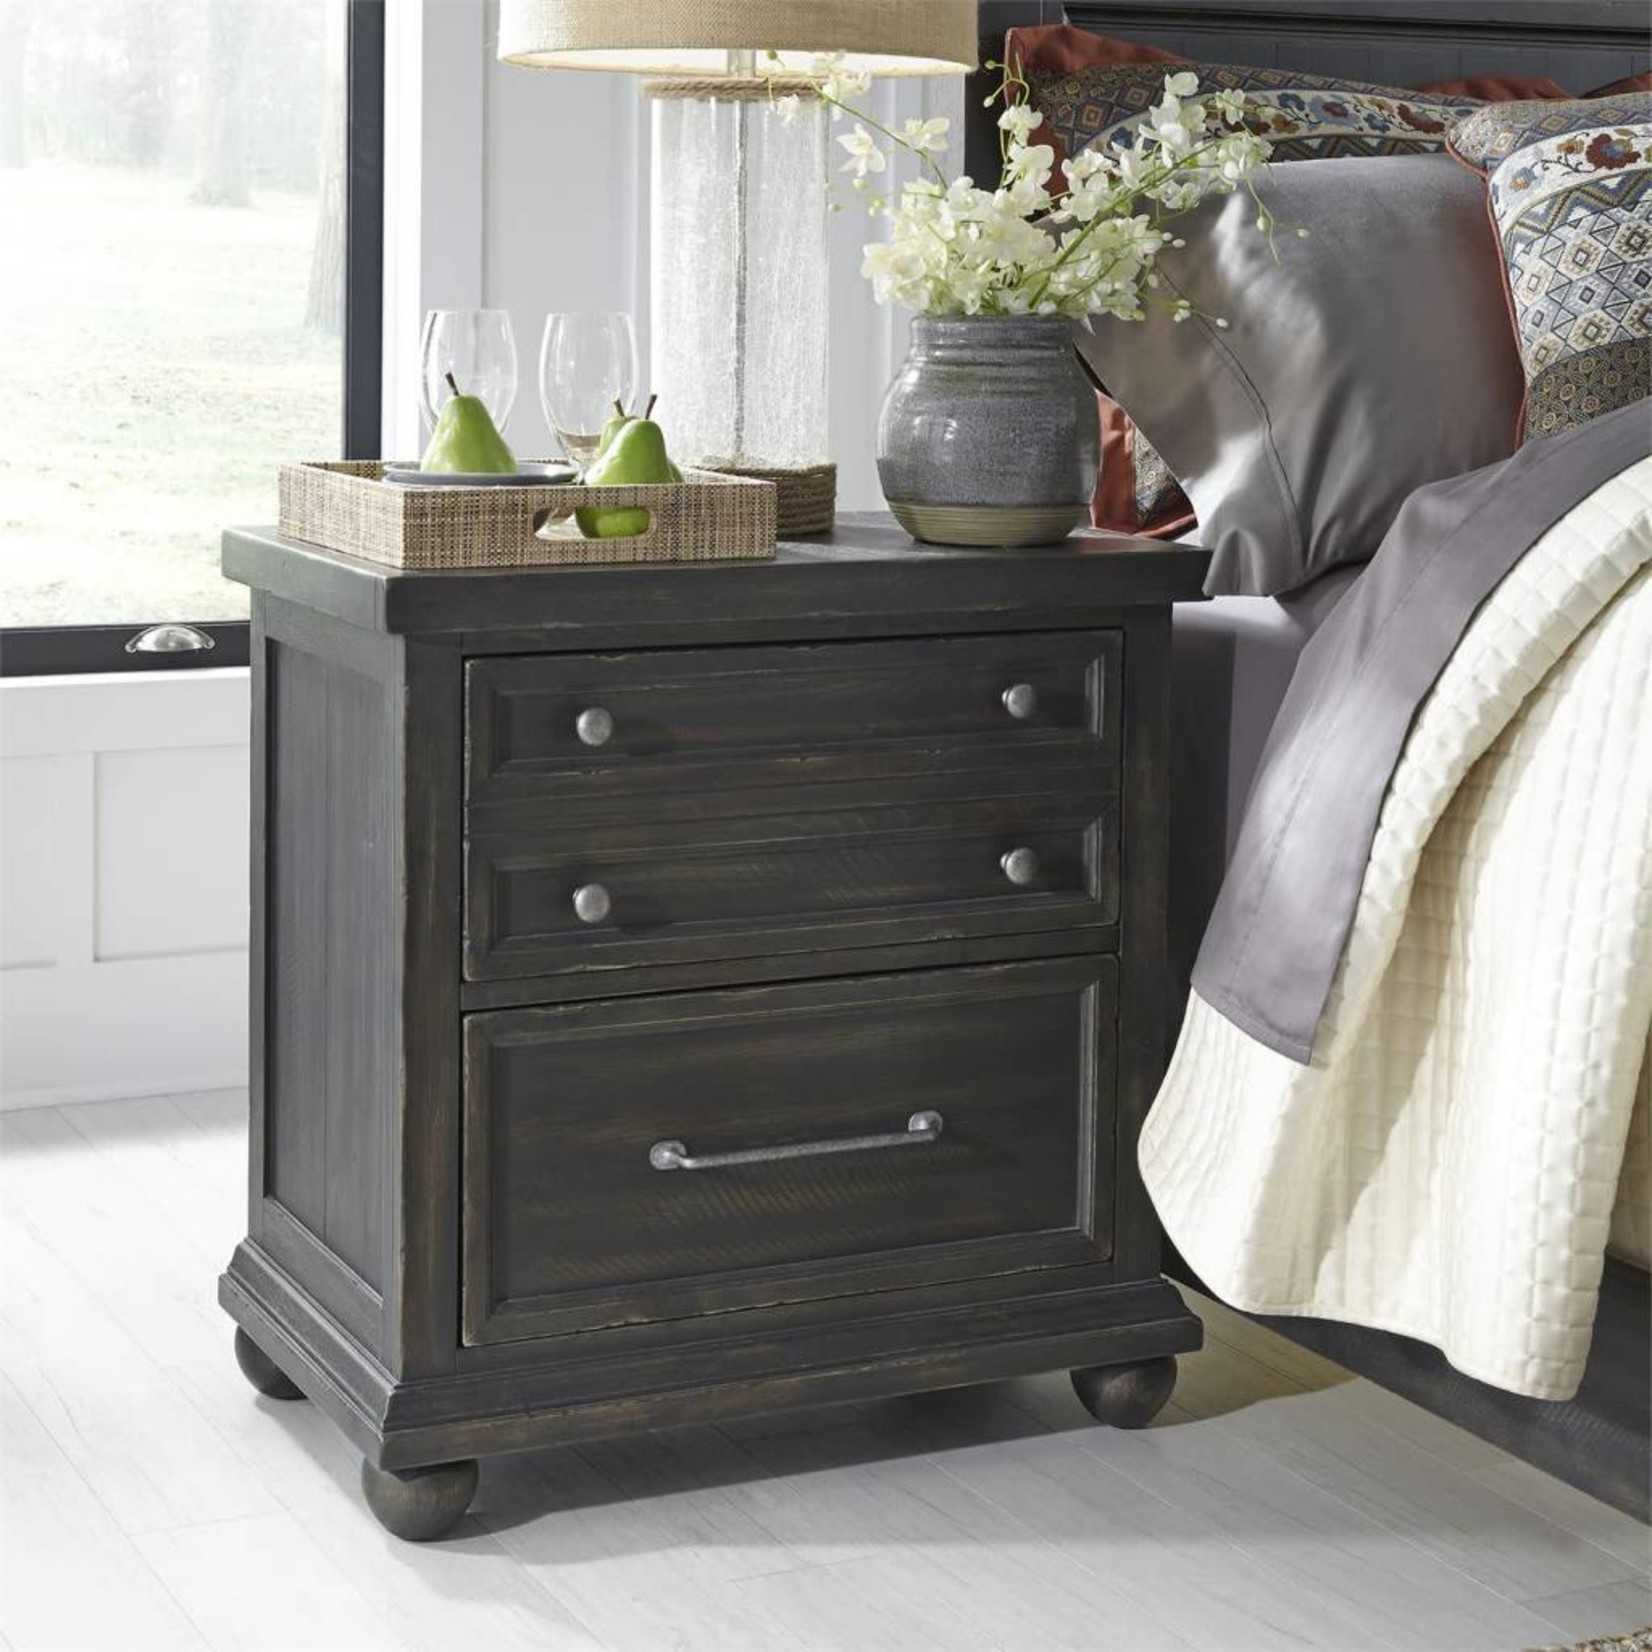 Harvest Home Nightstand w/ Charging Station 879-BR61